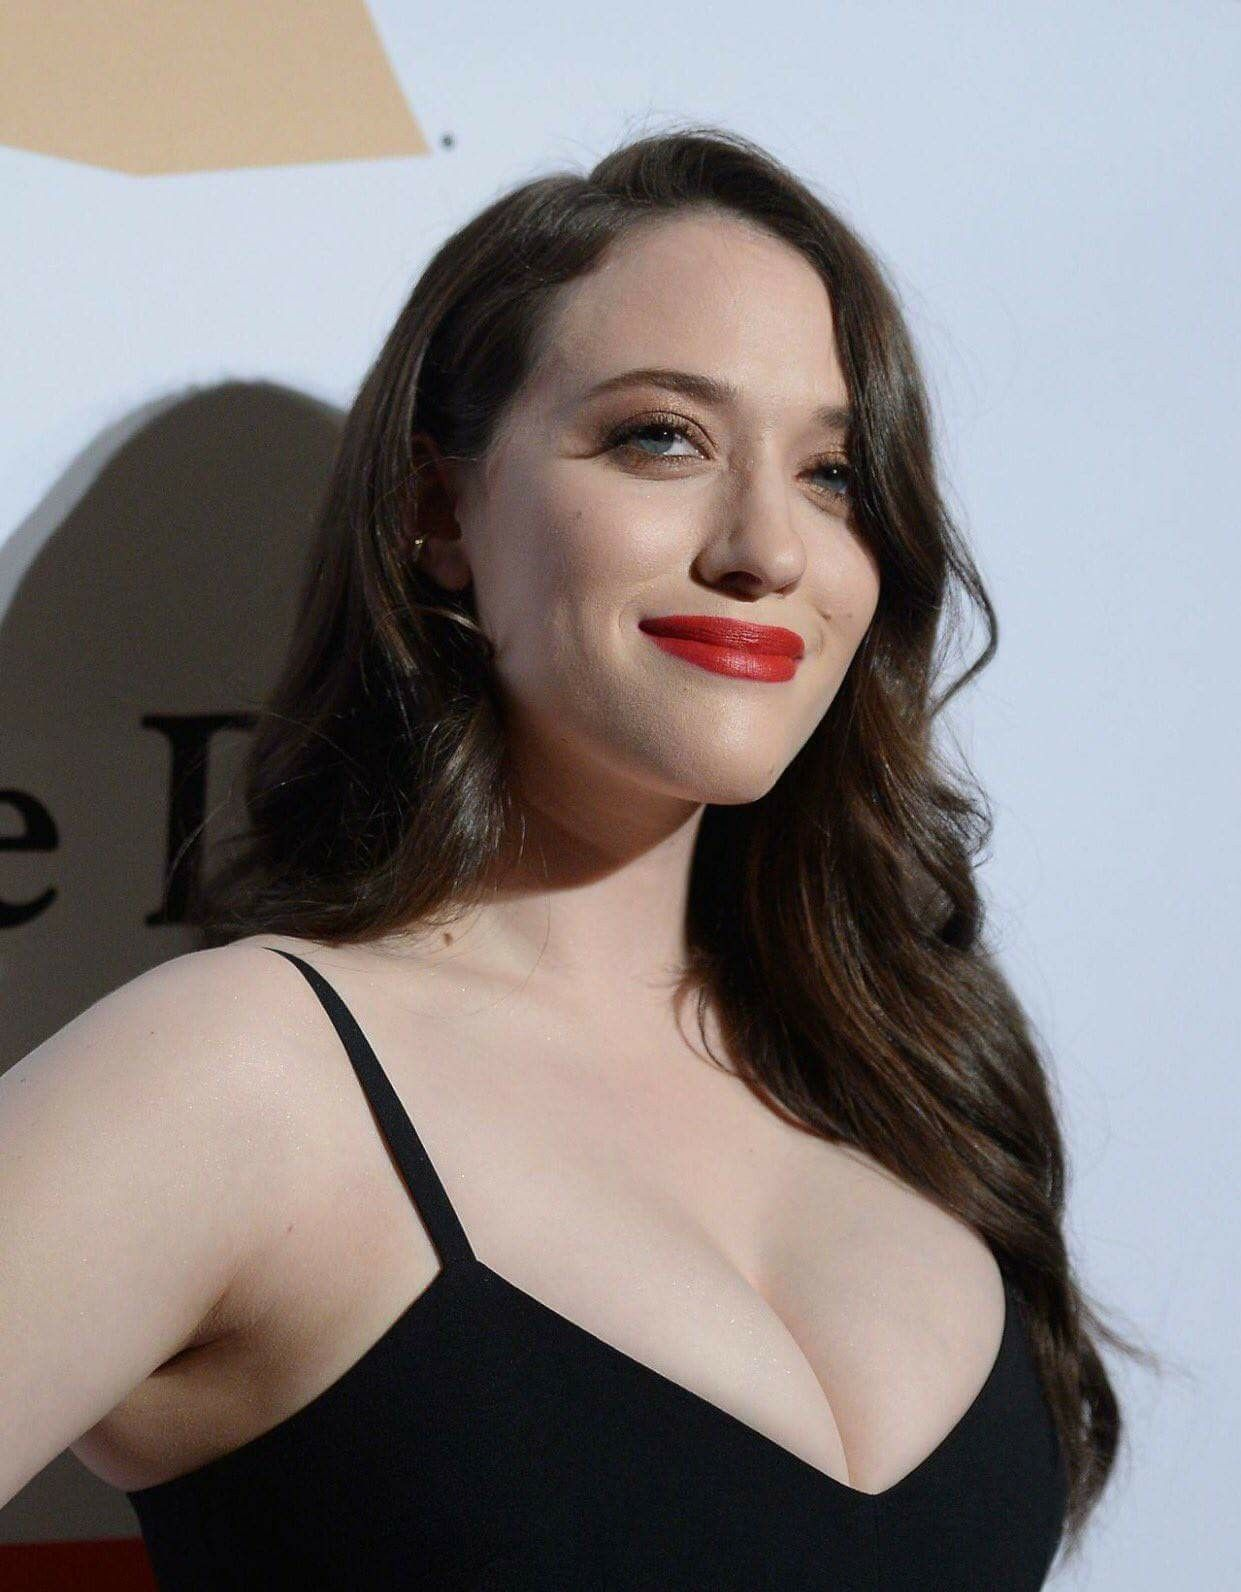 Cleavage Kat Dennings naked (95 foto and video), Tits, Paparazzi, Feet, in bikini 2019